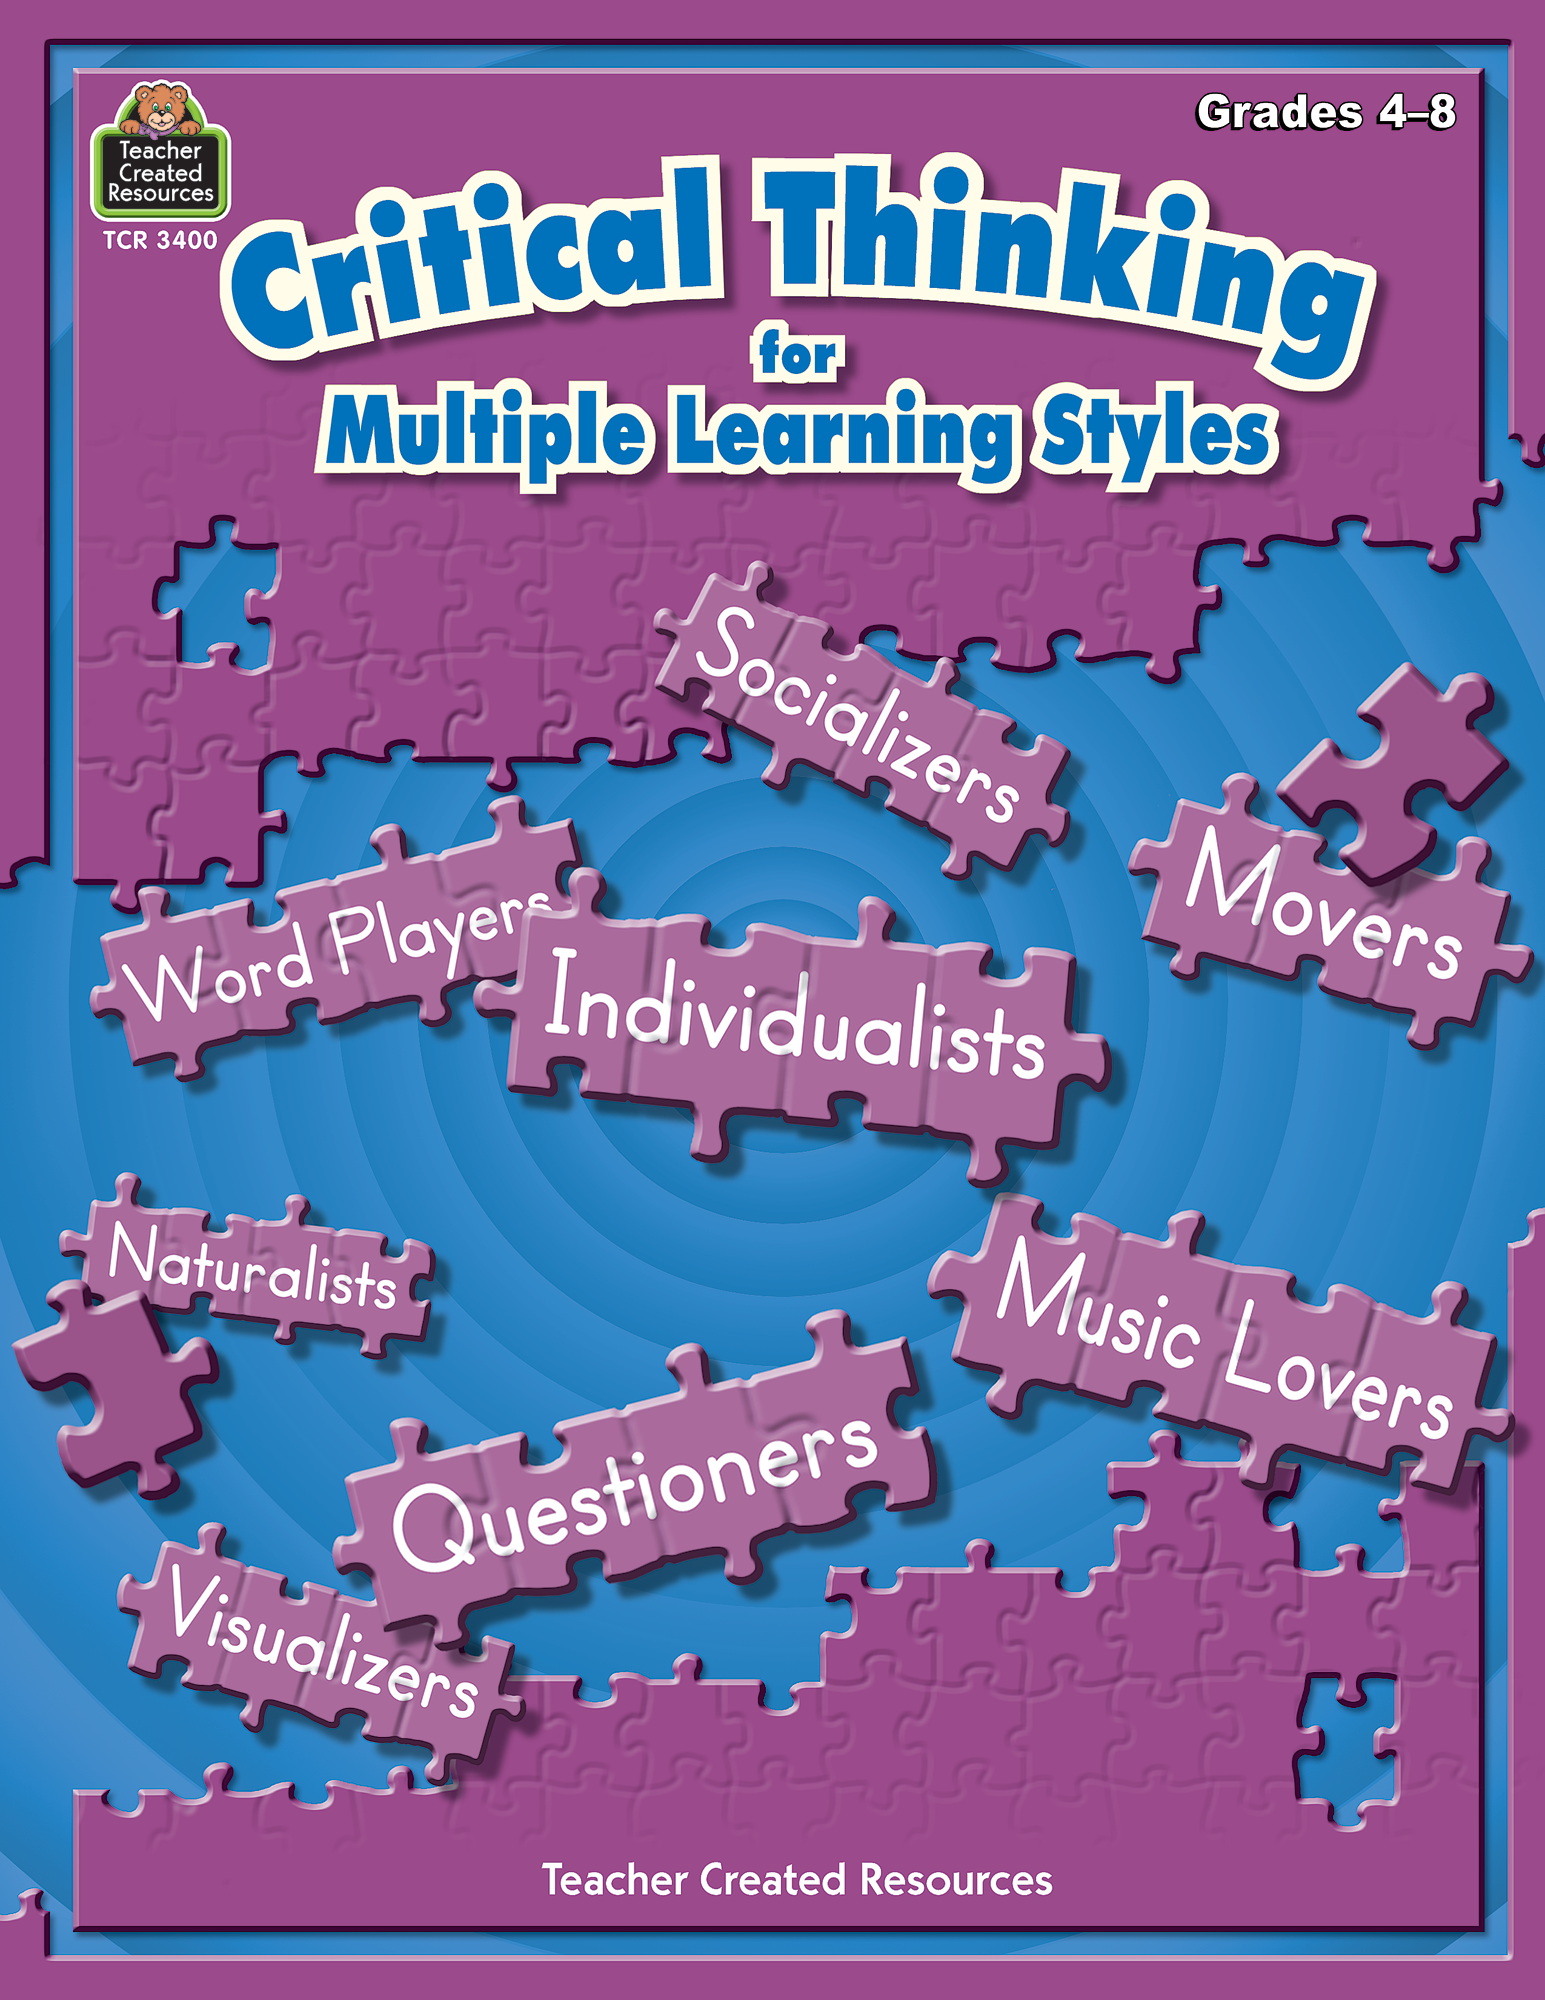 thinking styles of critical thinking and Learn what different learning styles your child possesses and how how game design can support your kid's problem-solving and critical thinking skills advertisement.